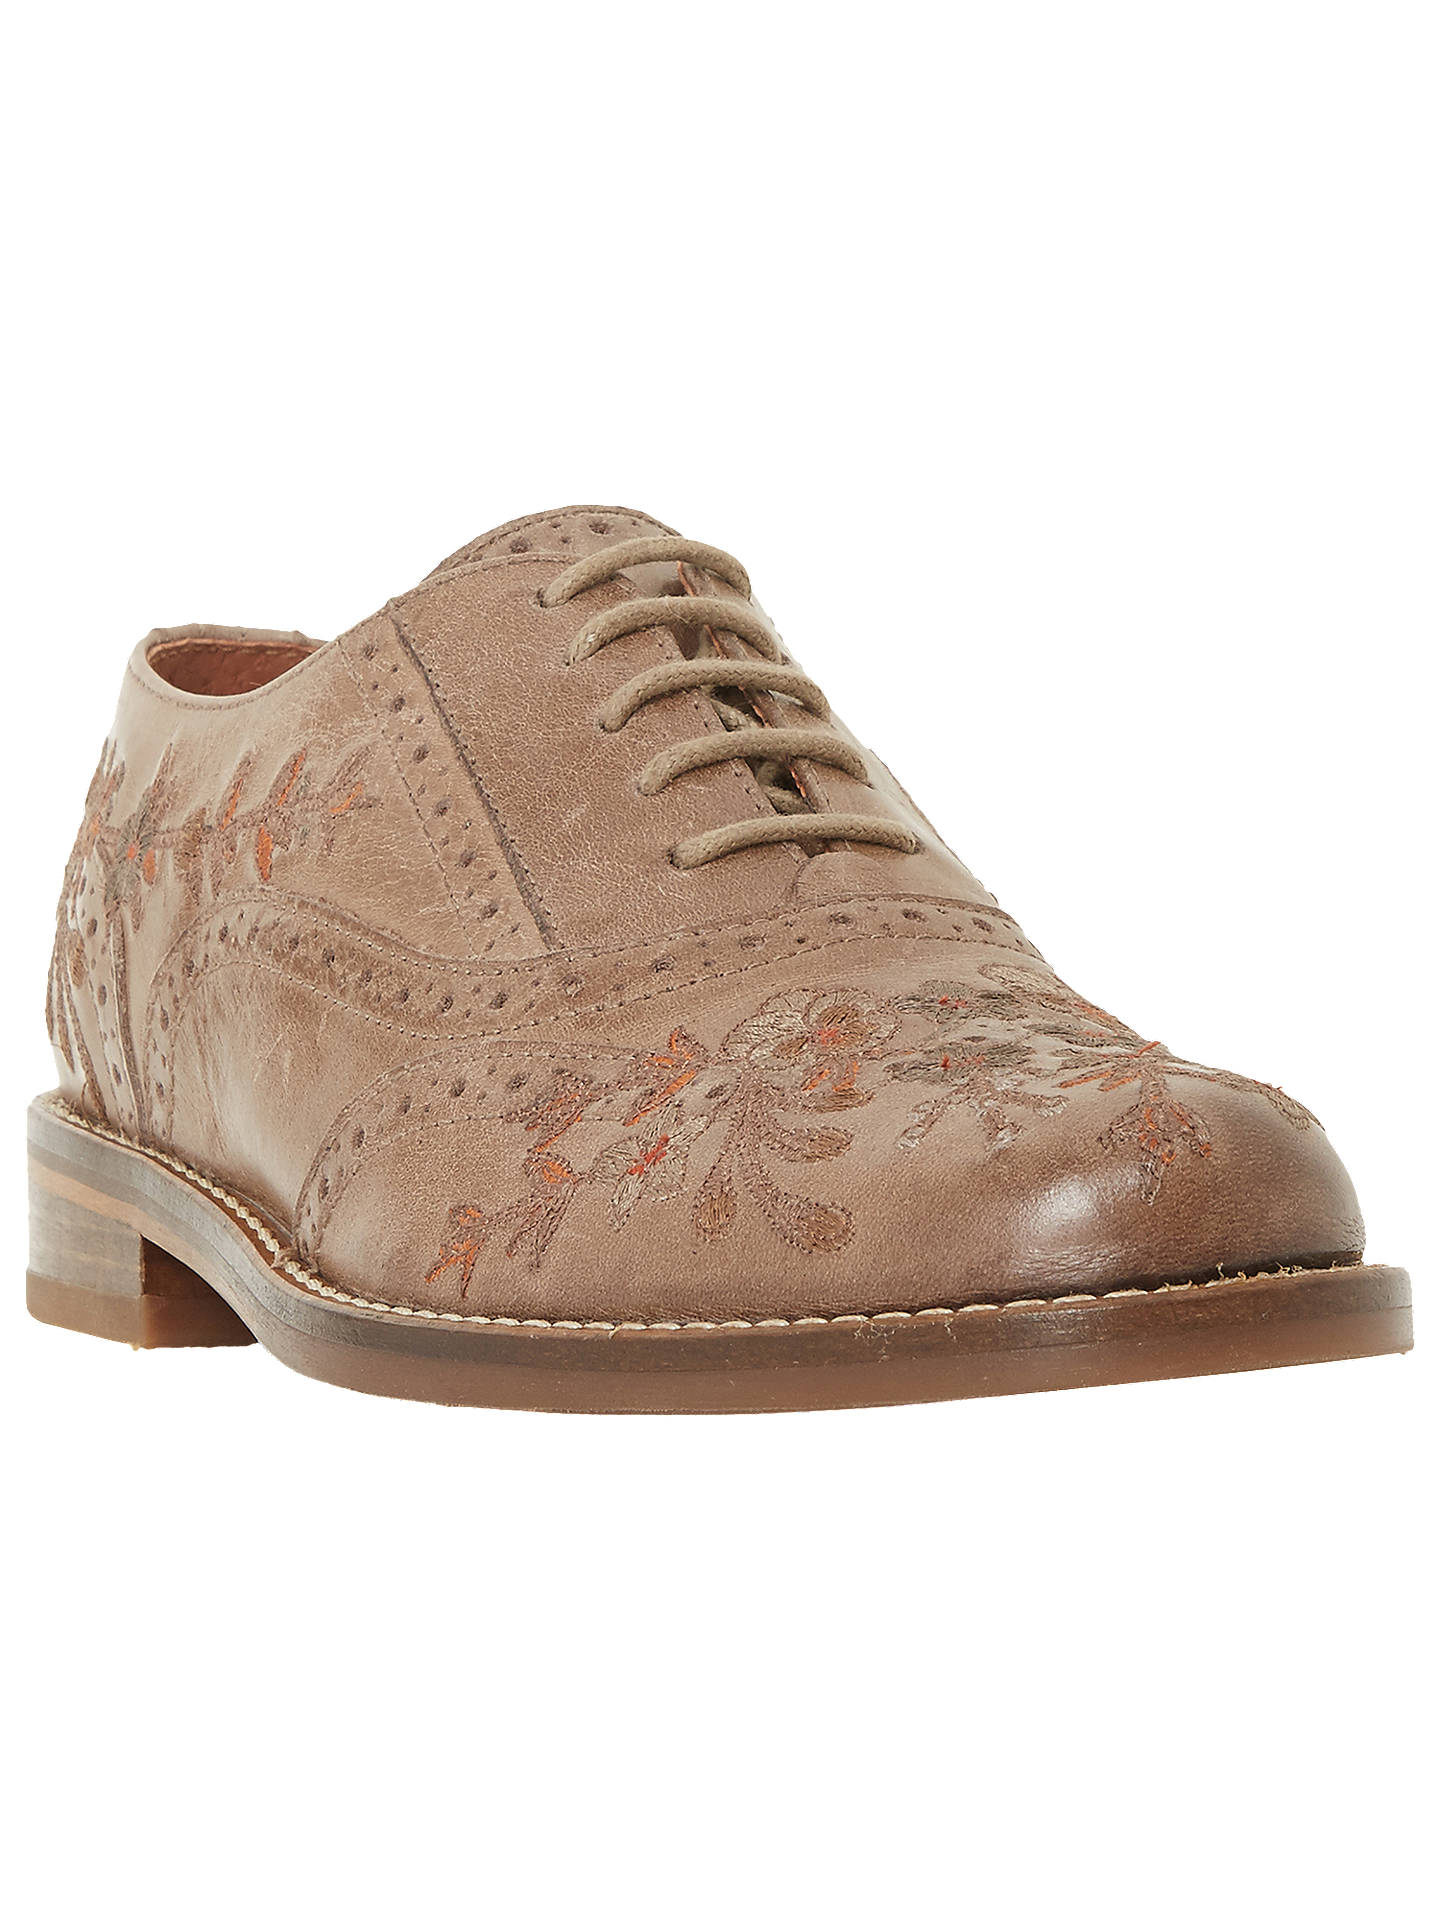 Buy Bertie Fielder Embroidered Brogues, Taupe, 3 Online at johnlewis.com